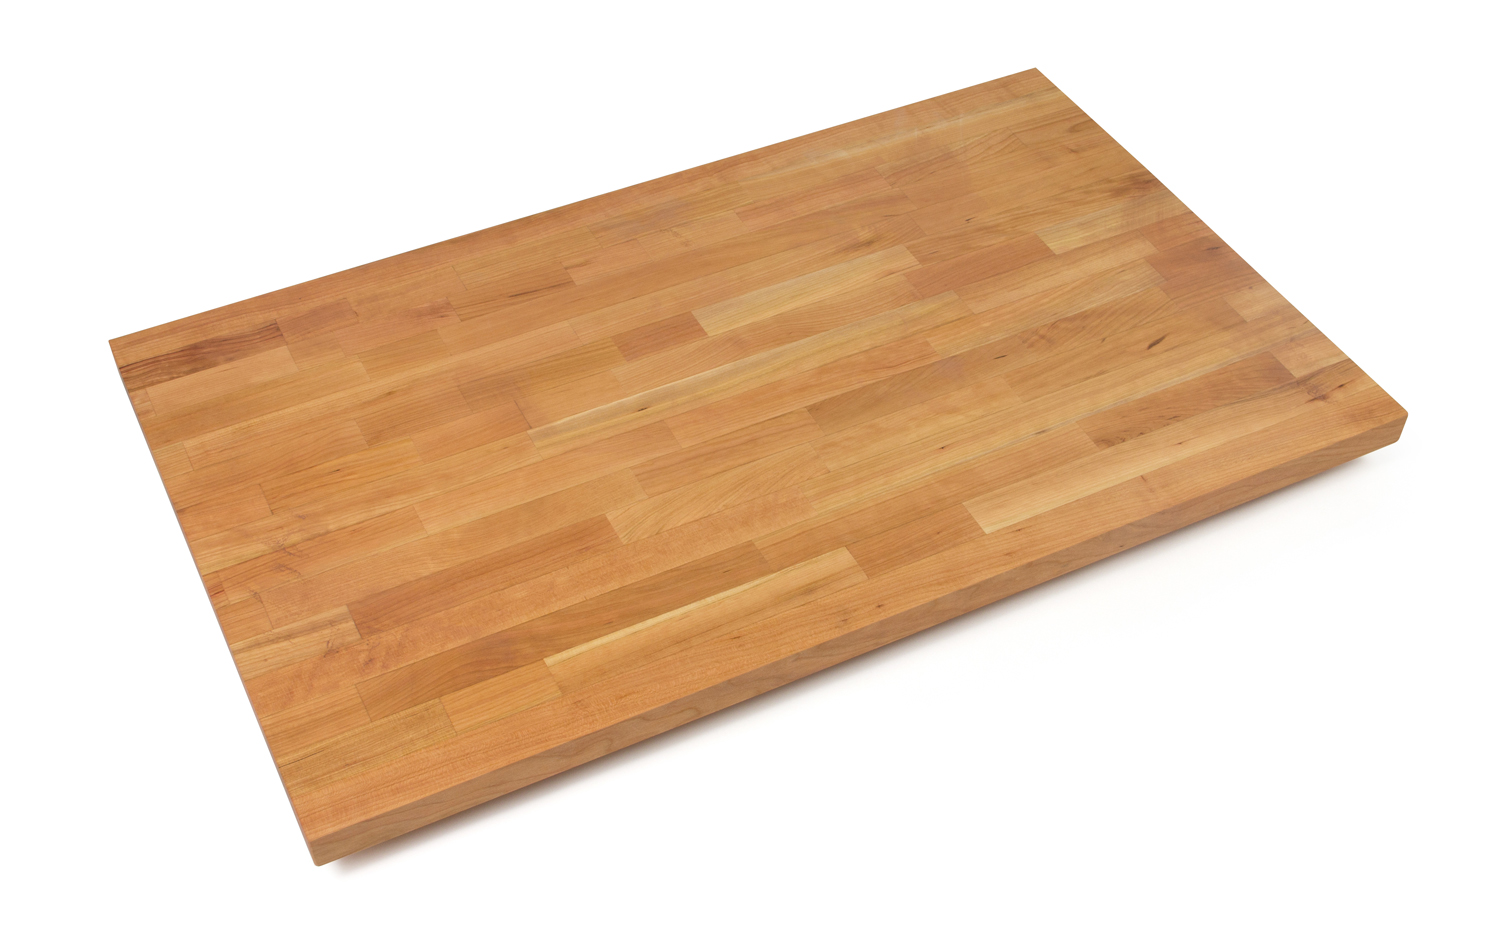 1.5 in. thick blended cherry butcher block counters 27 inches wide